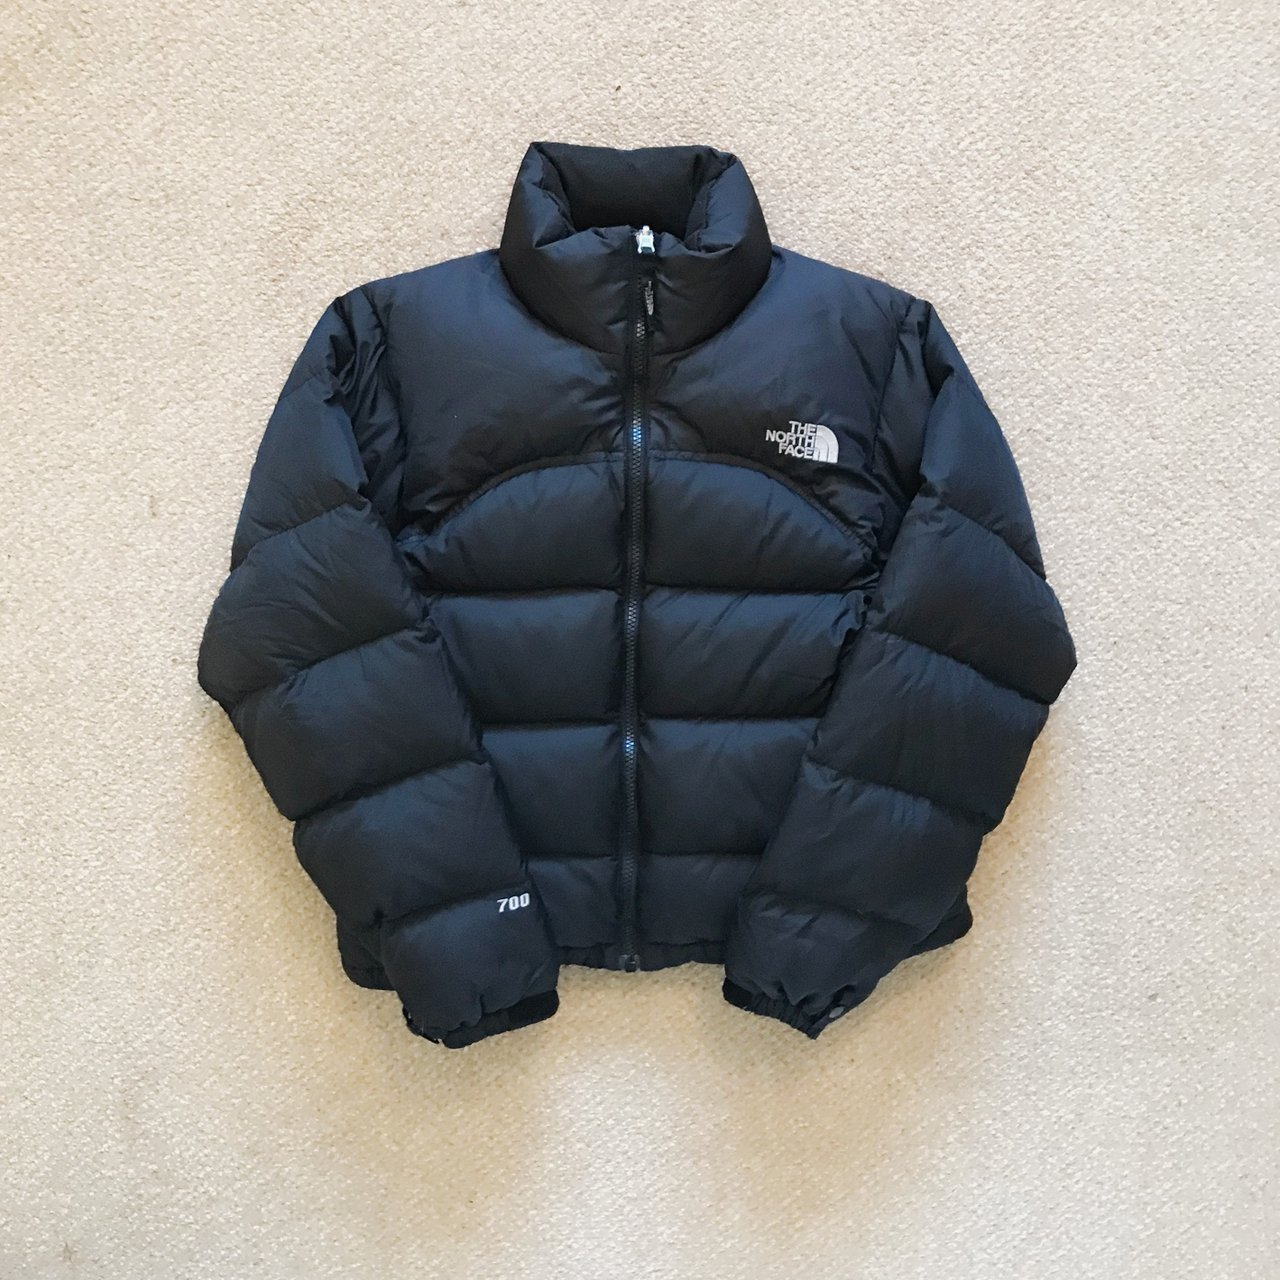 norwoodclothing. 6 months ago. United Kingdom. Women s XS The North Face  TNF 700 fill Puffer Jacket ... ccf730e5b